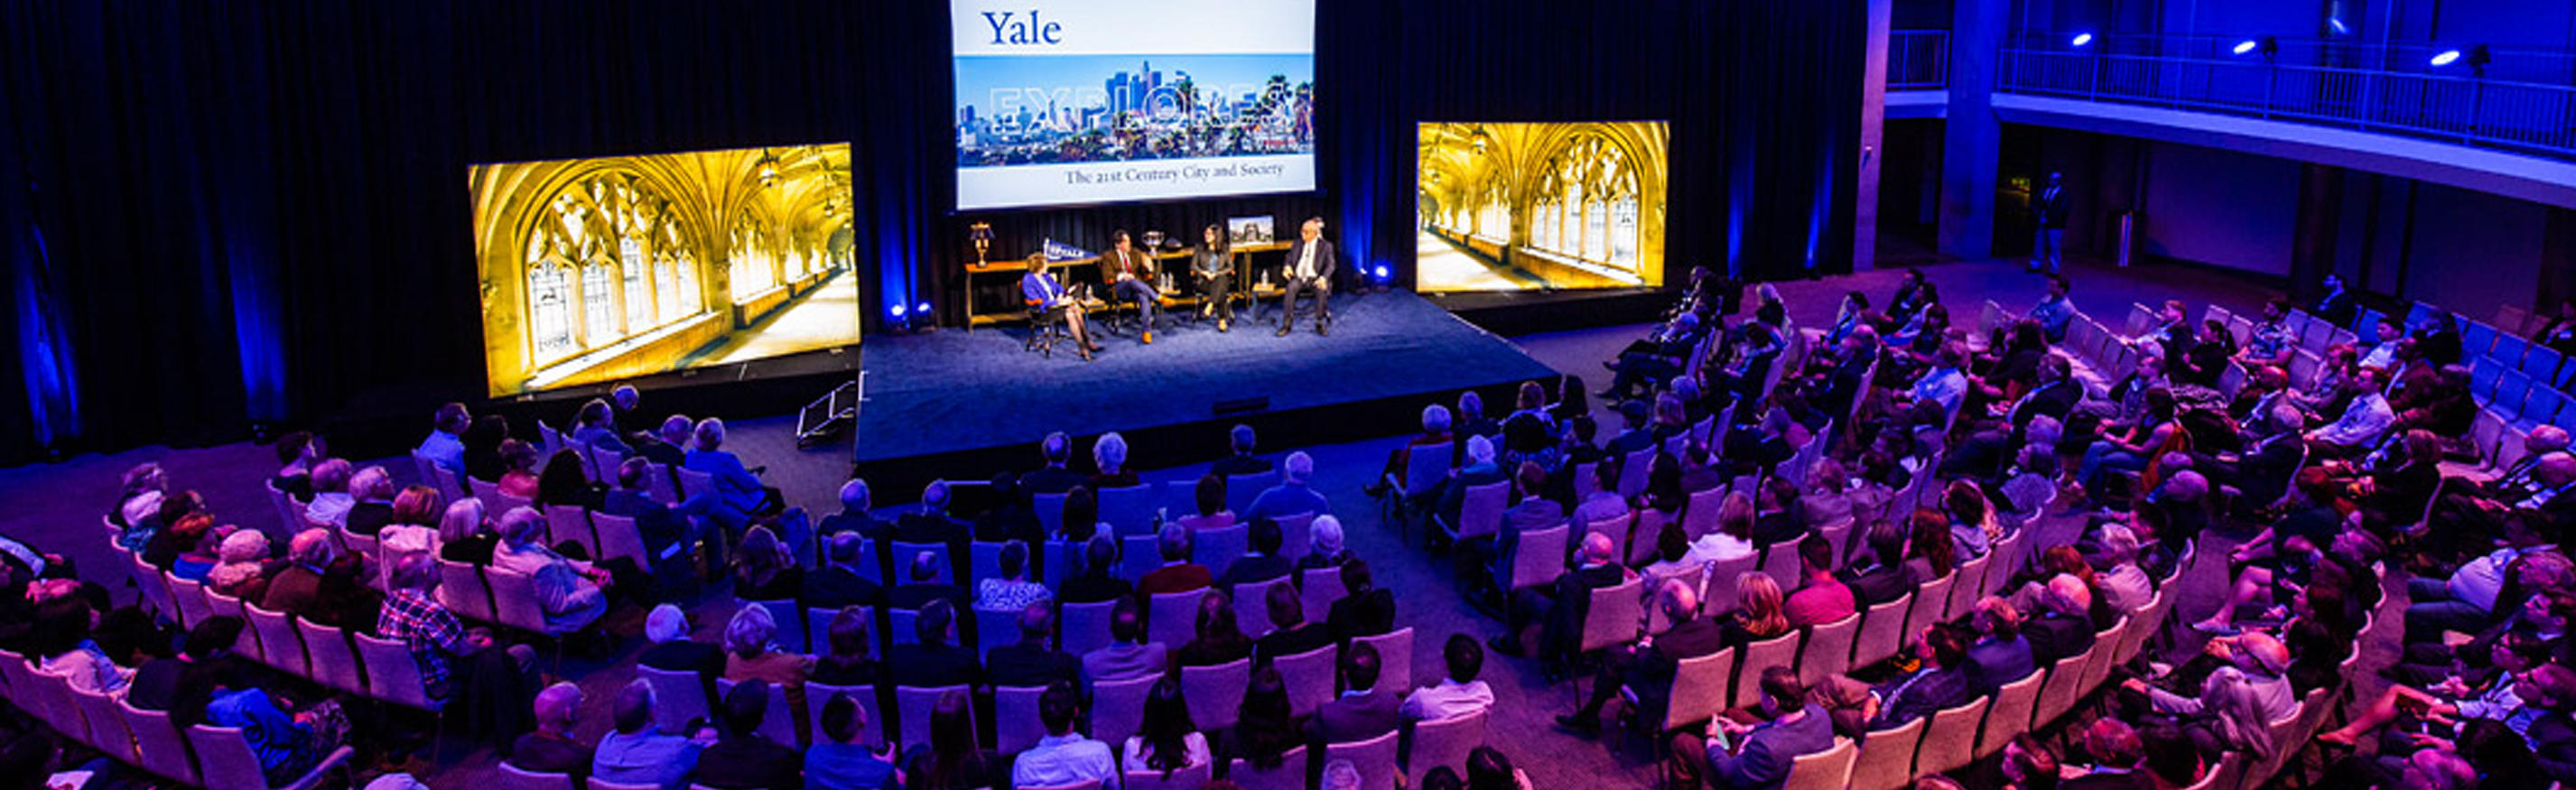 Yale Explores event shot with audience and panelists on stage.